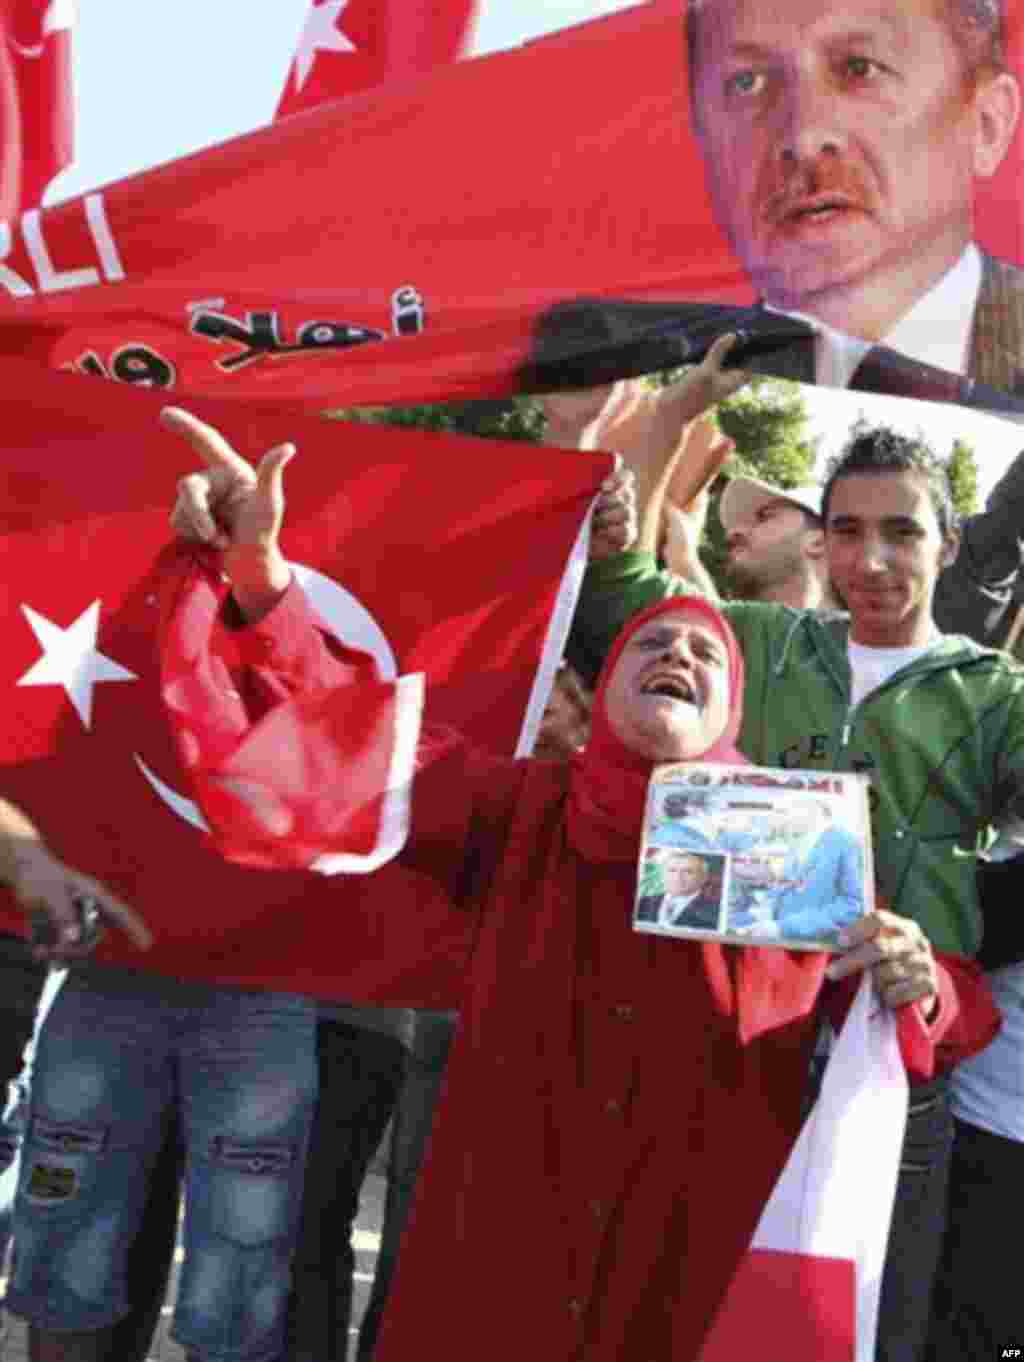 Supporters of Turkish Prime Minister Recep Tayyip Erdogan carry his pictures along Turkish flags as they gather outside Beirut International airport upon Erdogan's arrival in Lebanon, Wednesday, Nov. 24, 2010. (AP Photo/Bilal Hussein)